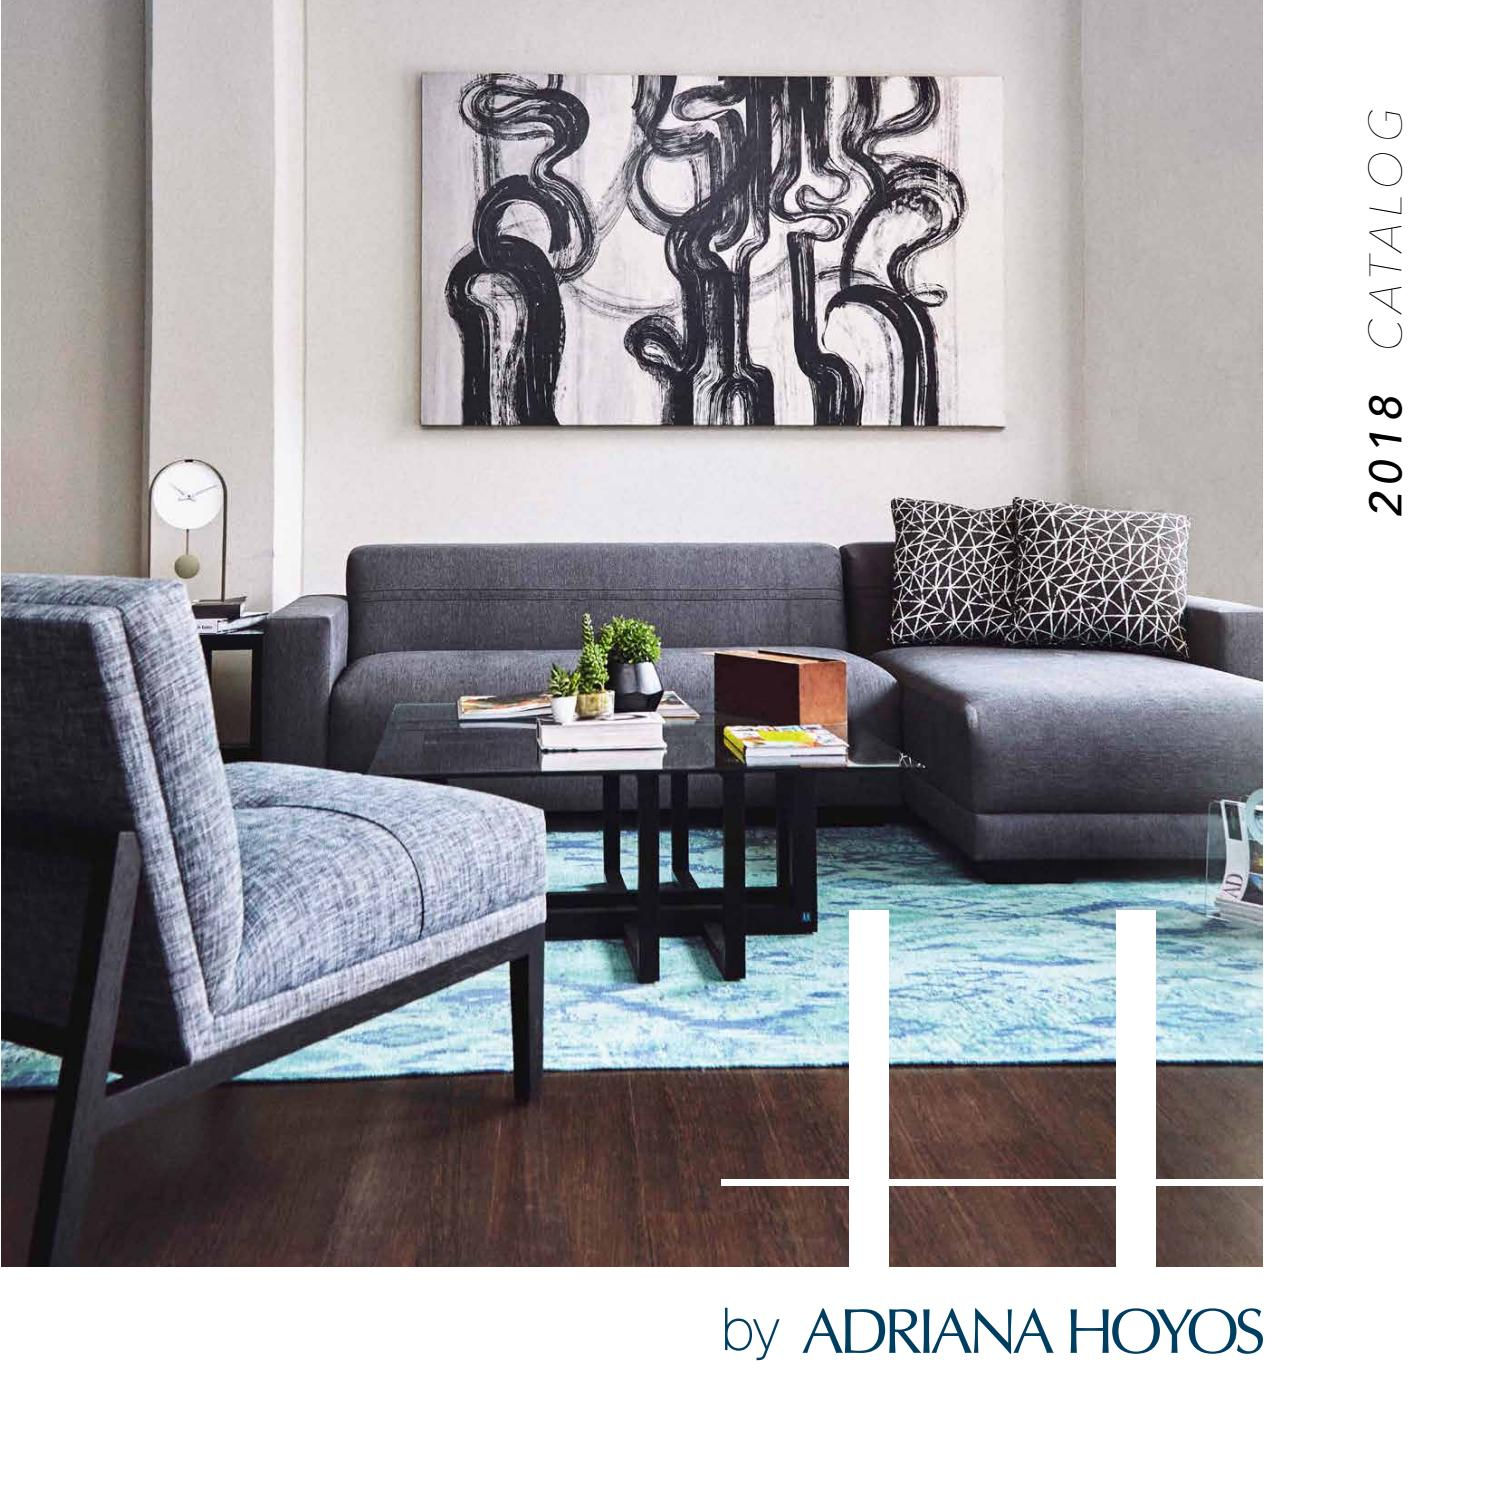 Catalogo H By Ah 2017 By Adriana Hoyos Issuu